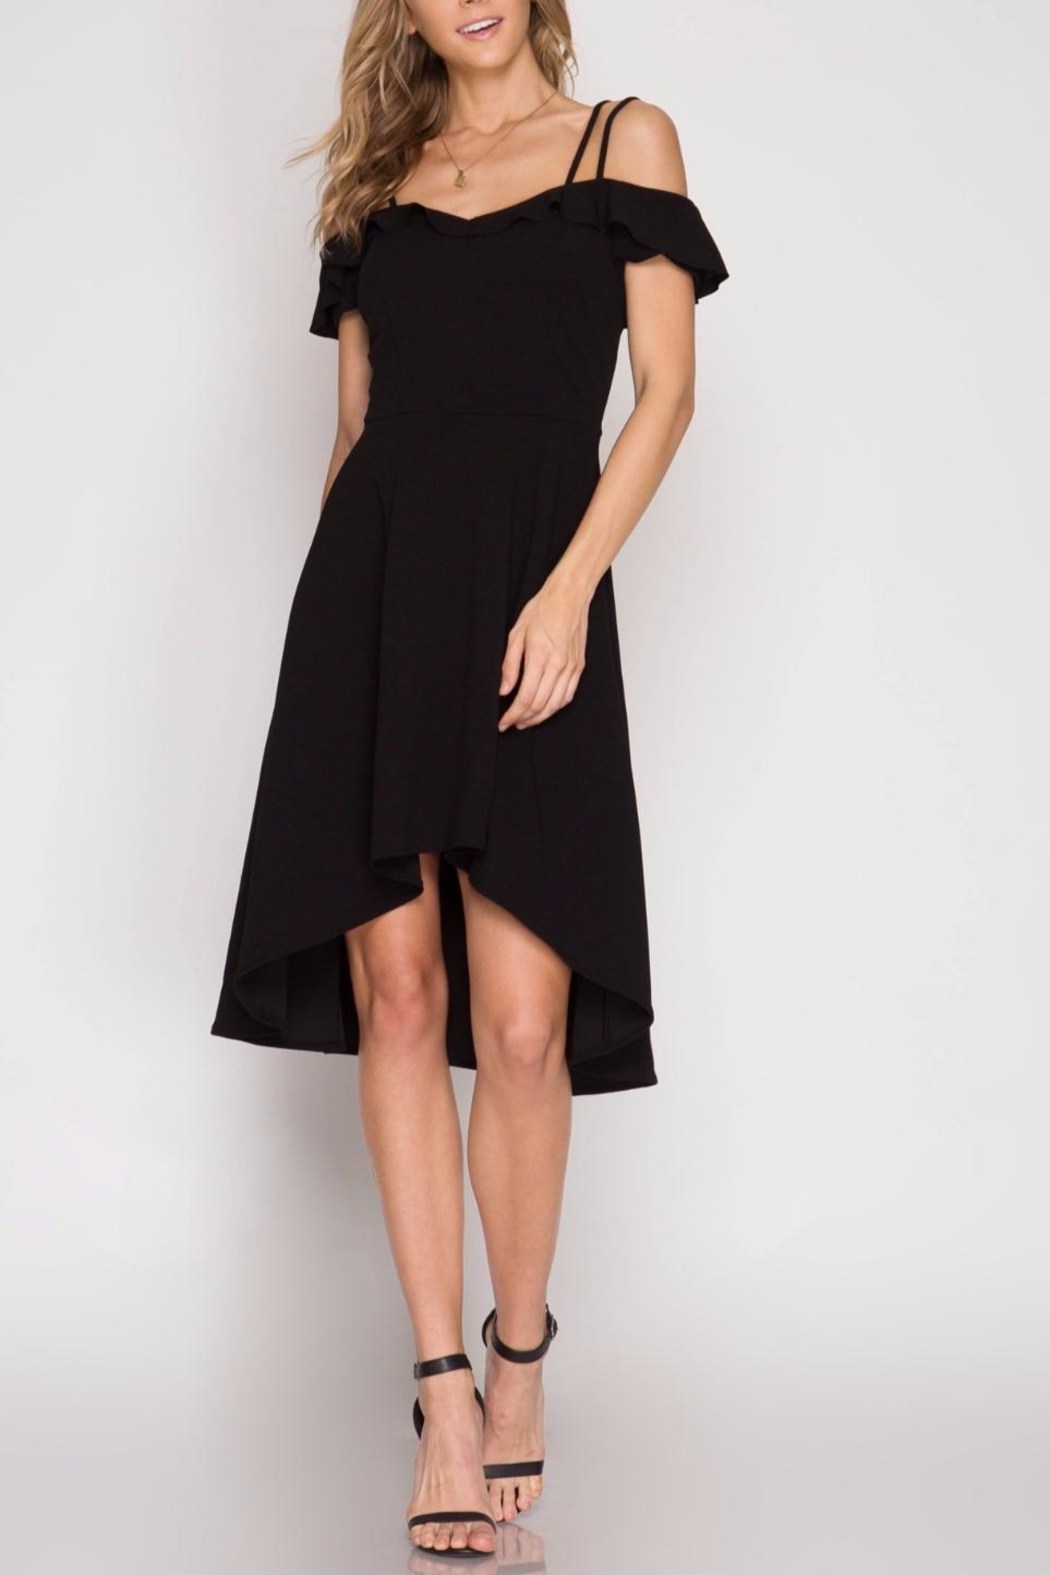 She + Sky Off Shoulder Black Dress - Main Image